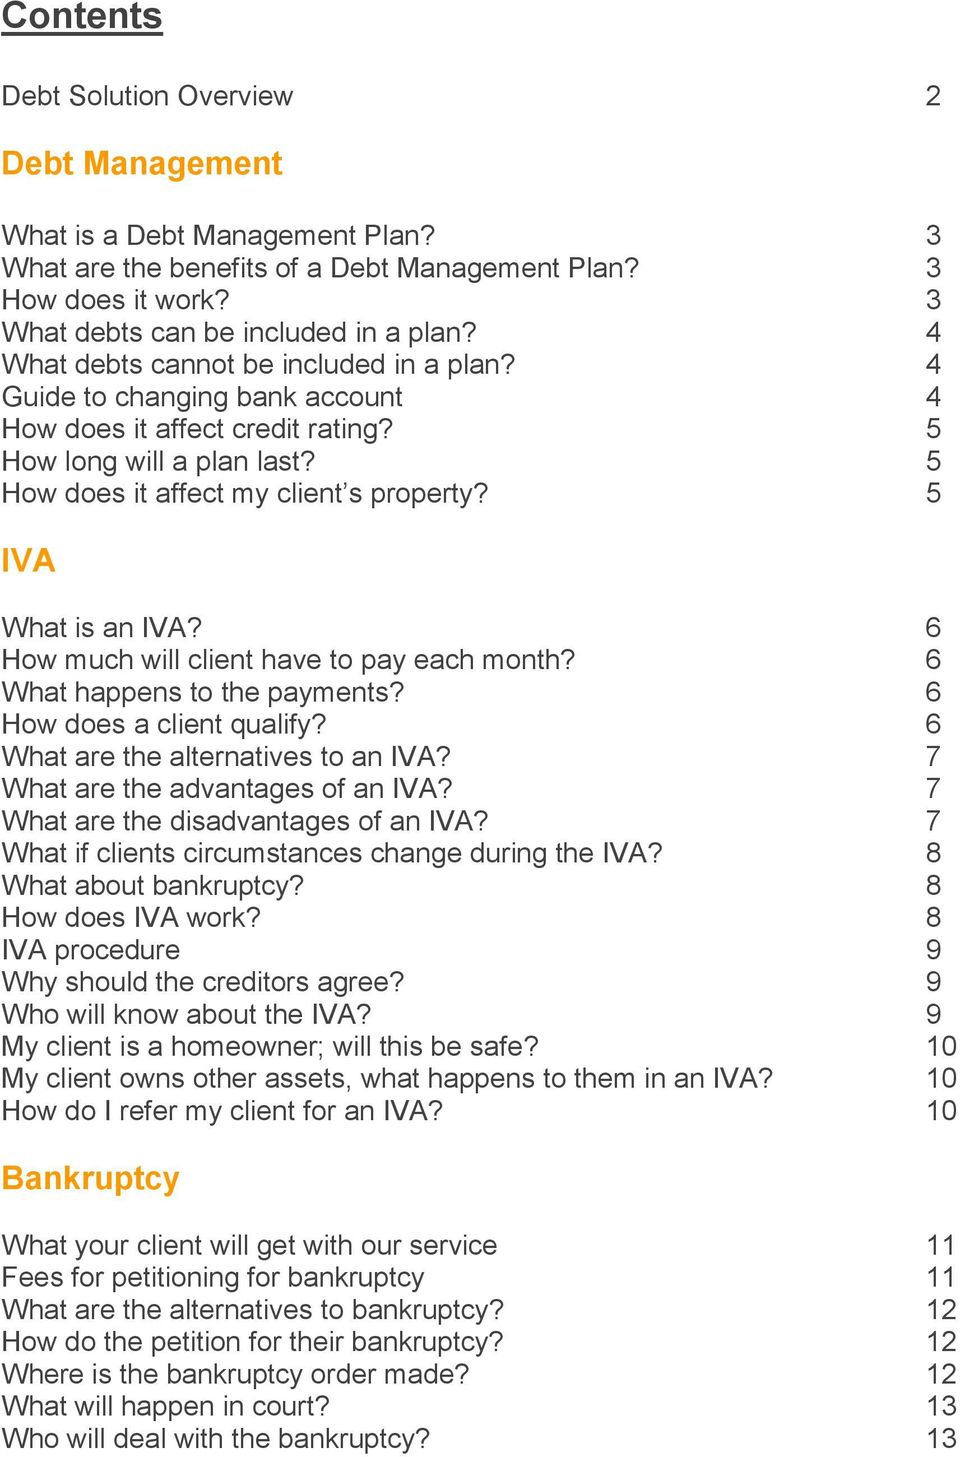 5 IVA What is an IVA? 6 How much will client have to pay each month? 6 What happens to the payments? 6 How does a client qualify? 6 What are the alternatives to an IVA?